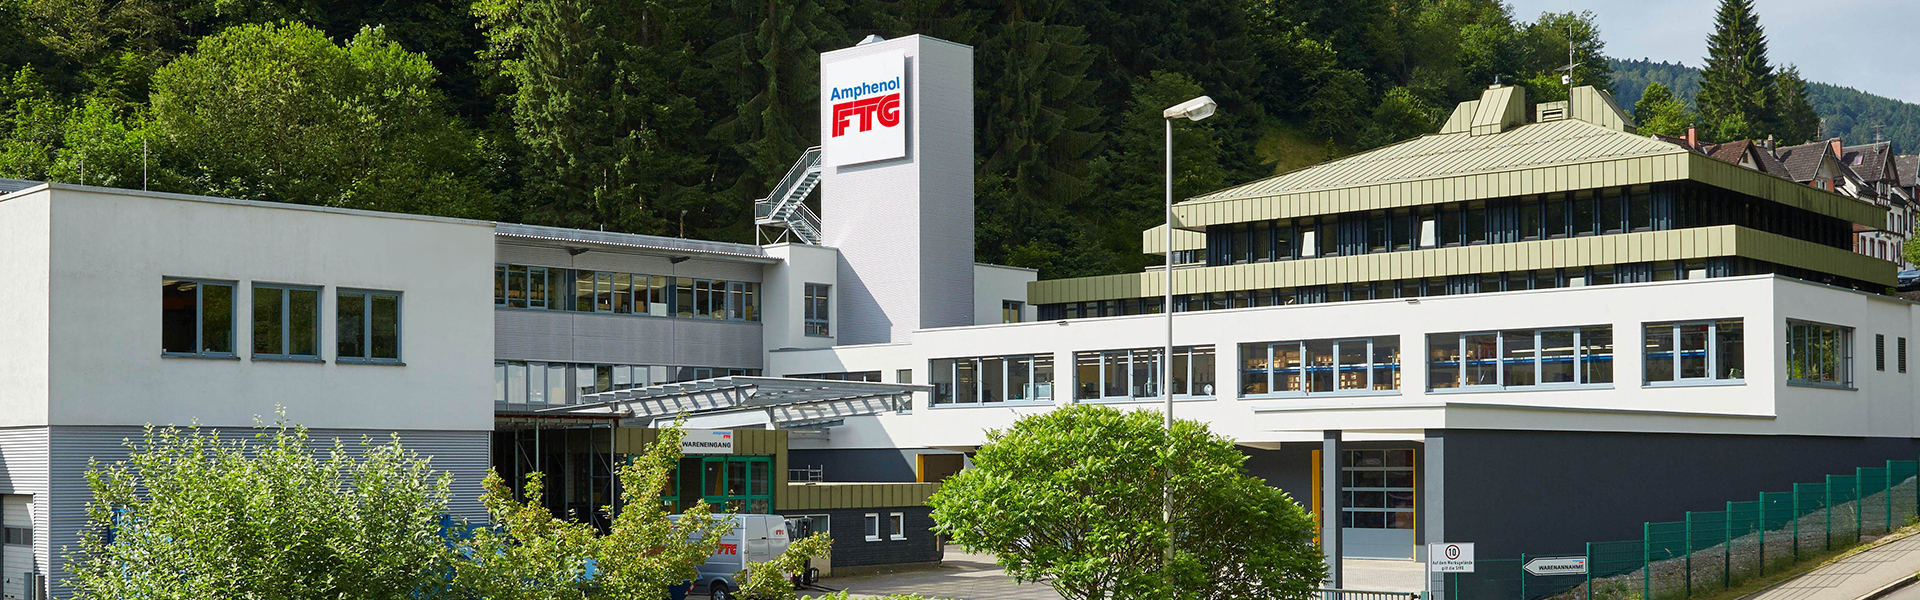 FTG Headquarter Triberg